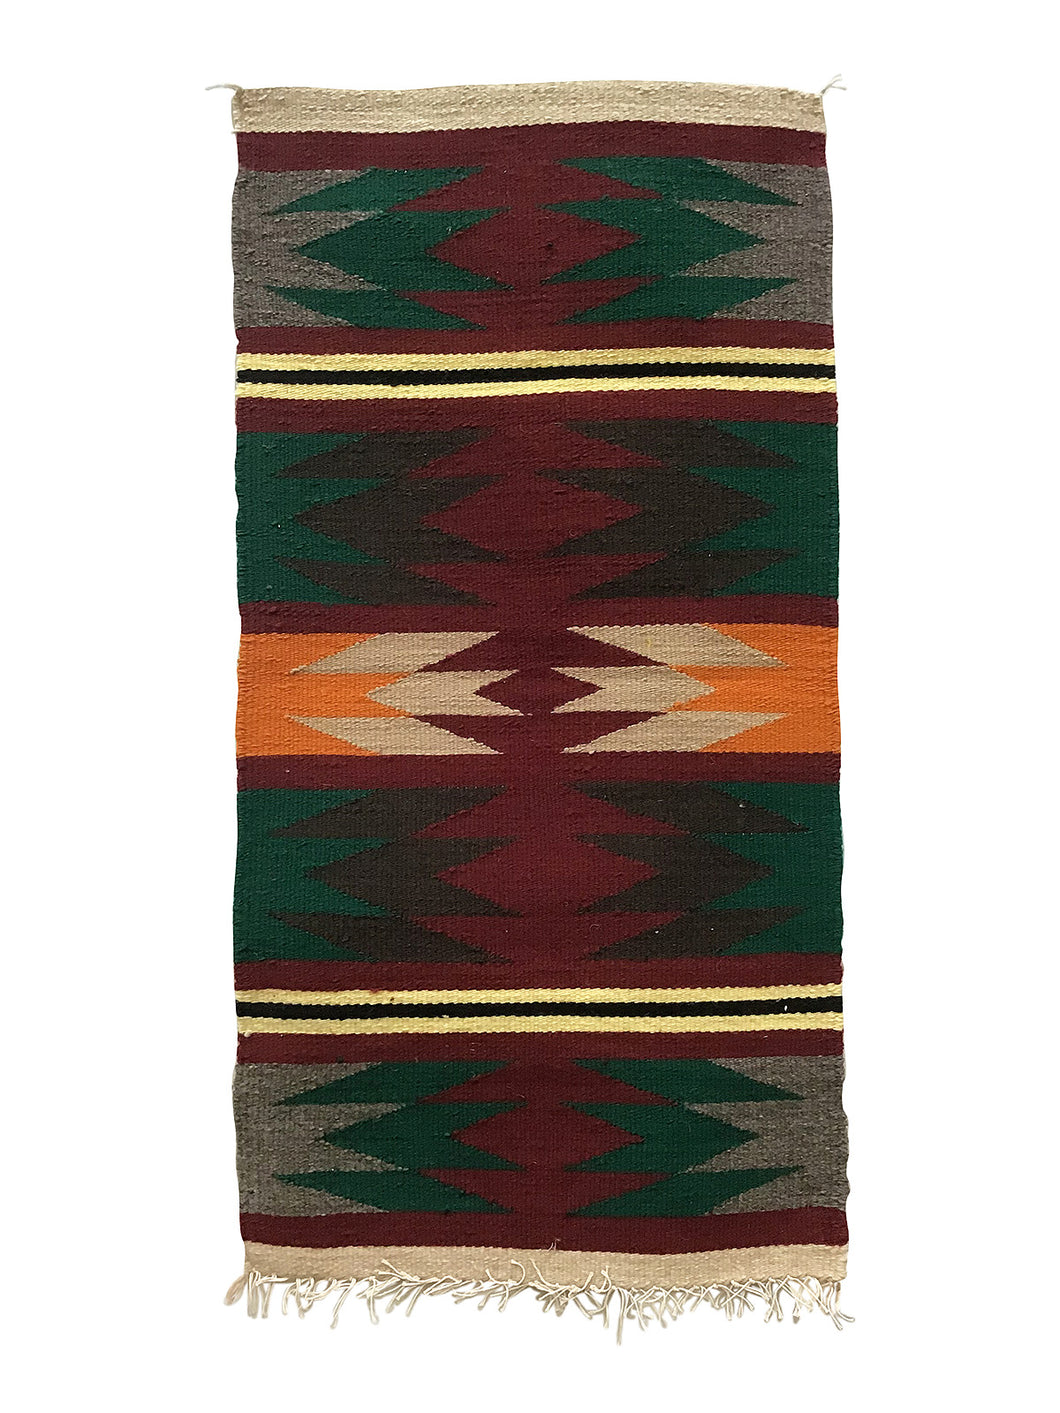 "Jennie Peterson, Gallup Throw Rug, Navajo Handwoven, Wool, Cotton, 39"" x 21"""